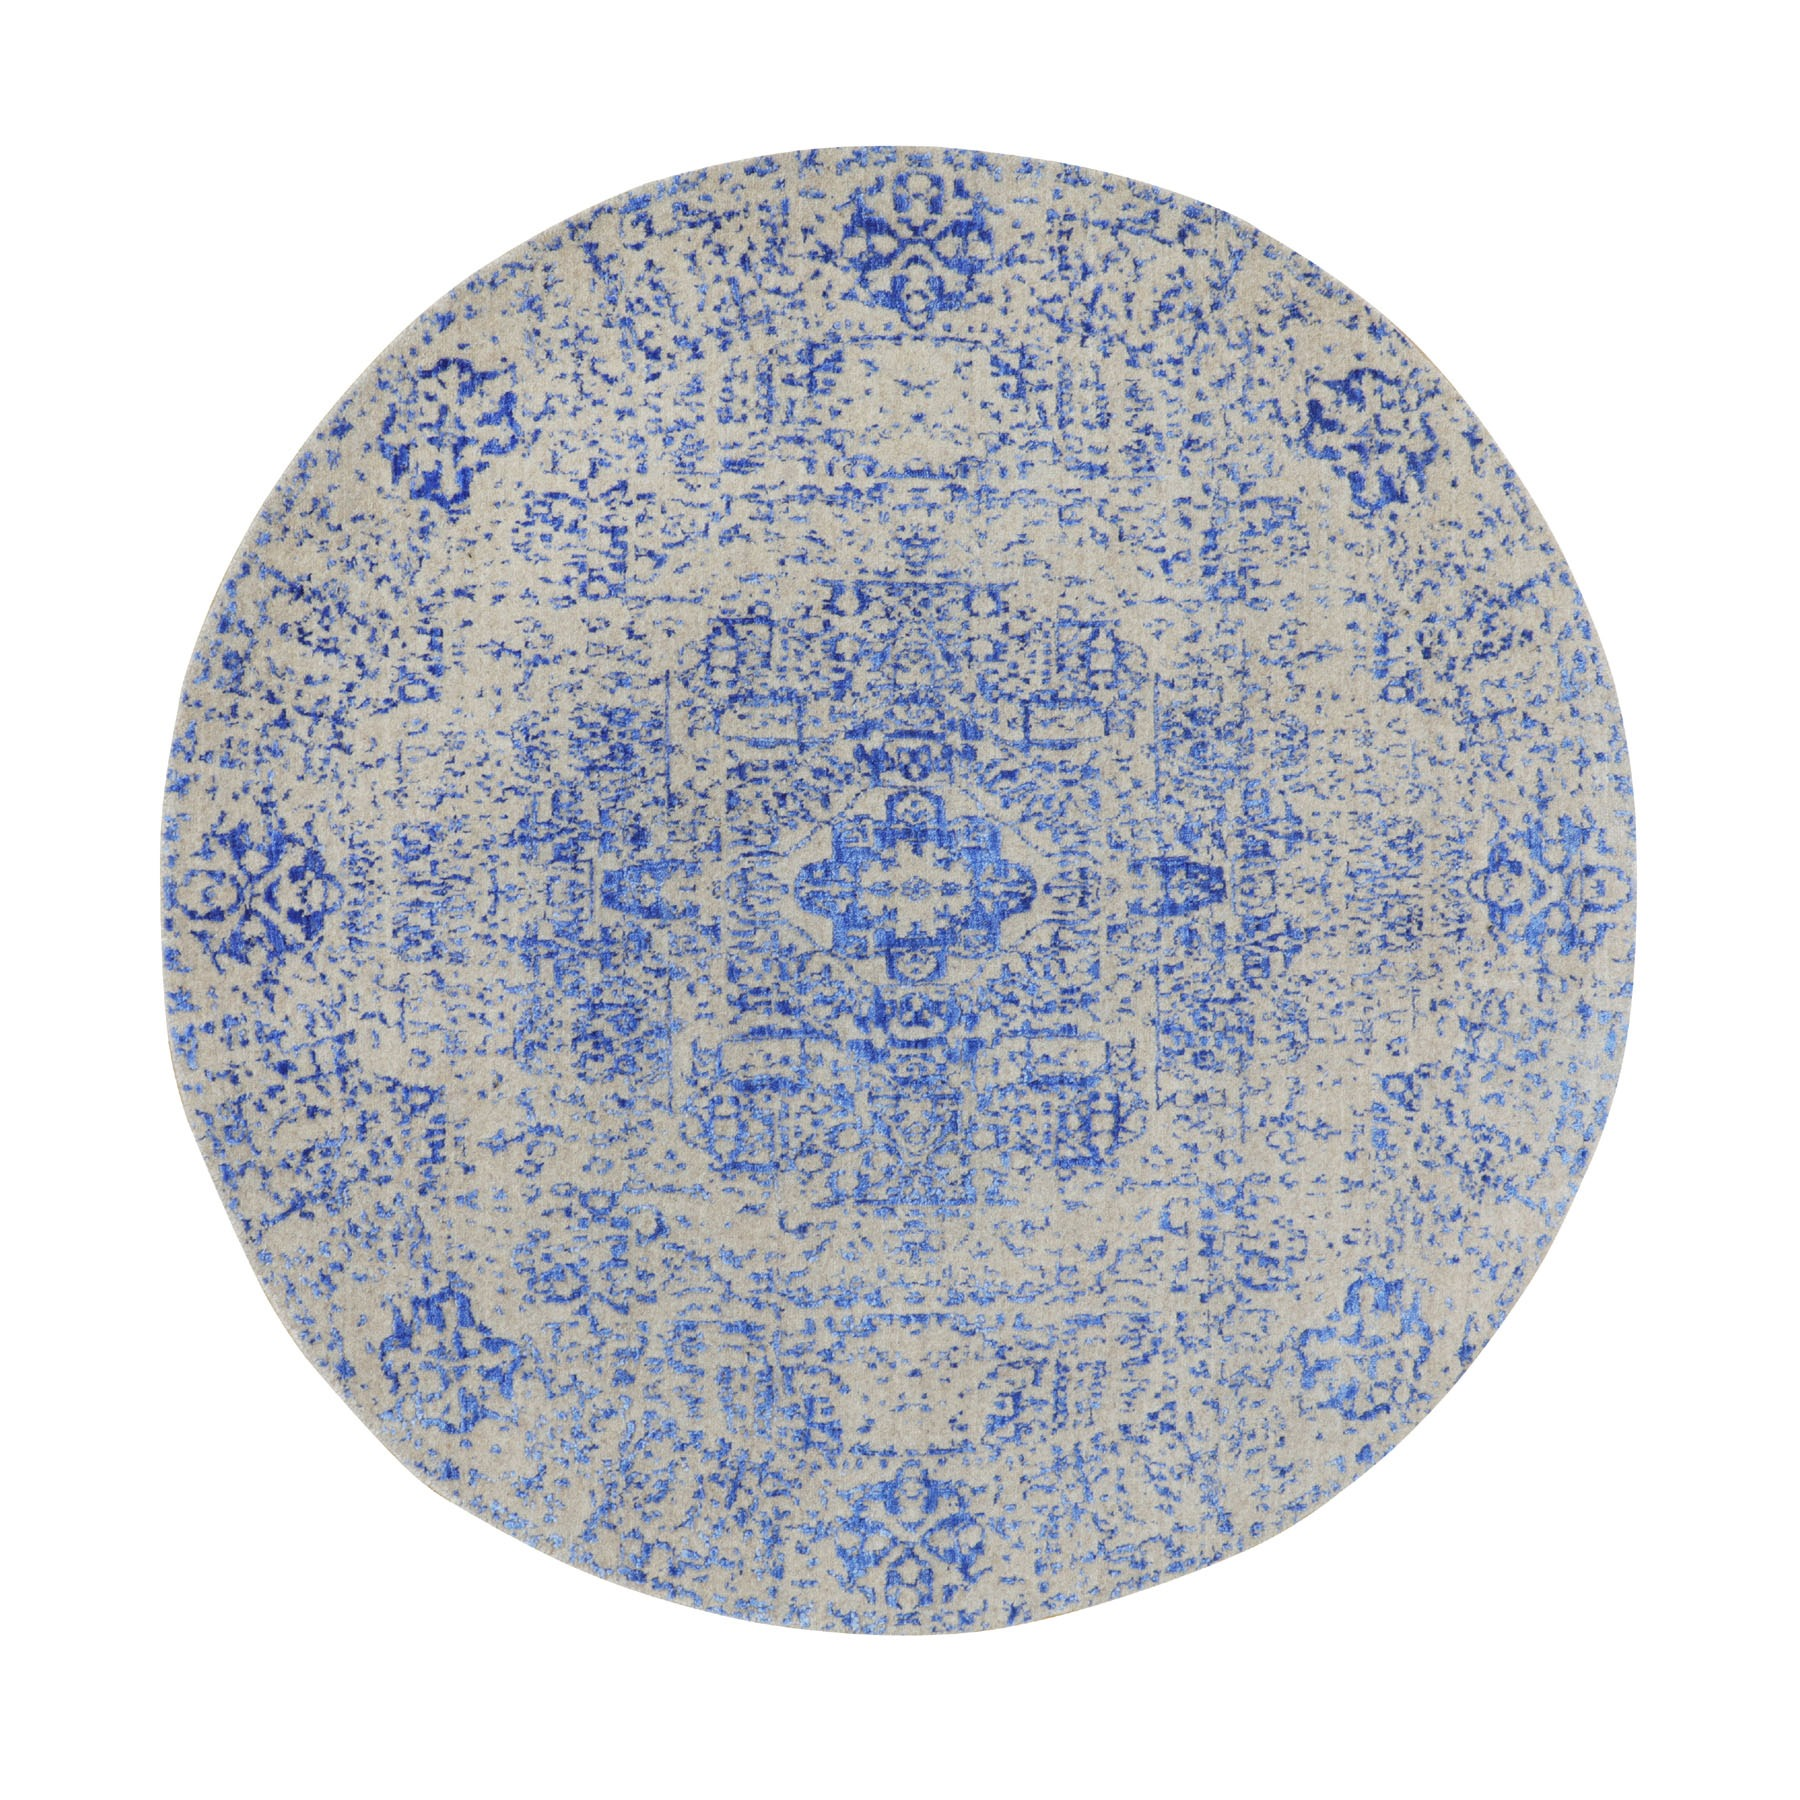 "5'8""x5'8"" Blue Wool and Silk Mamluk Design Jacquard Hand Loomed Round Oriental Rug"